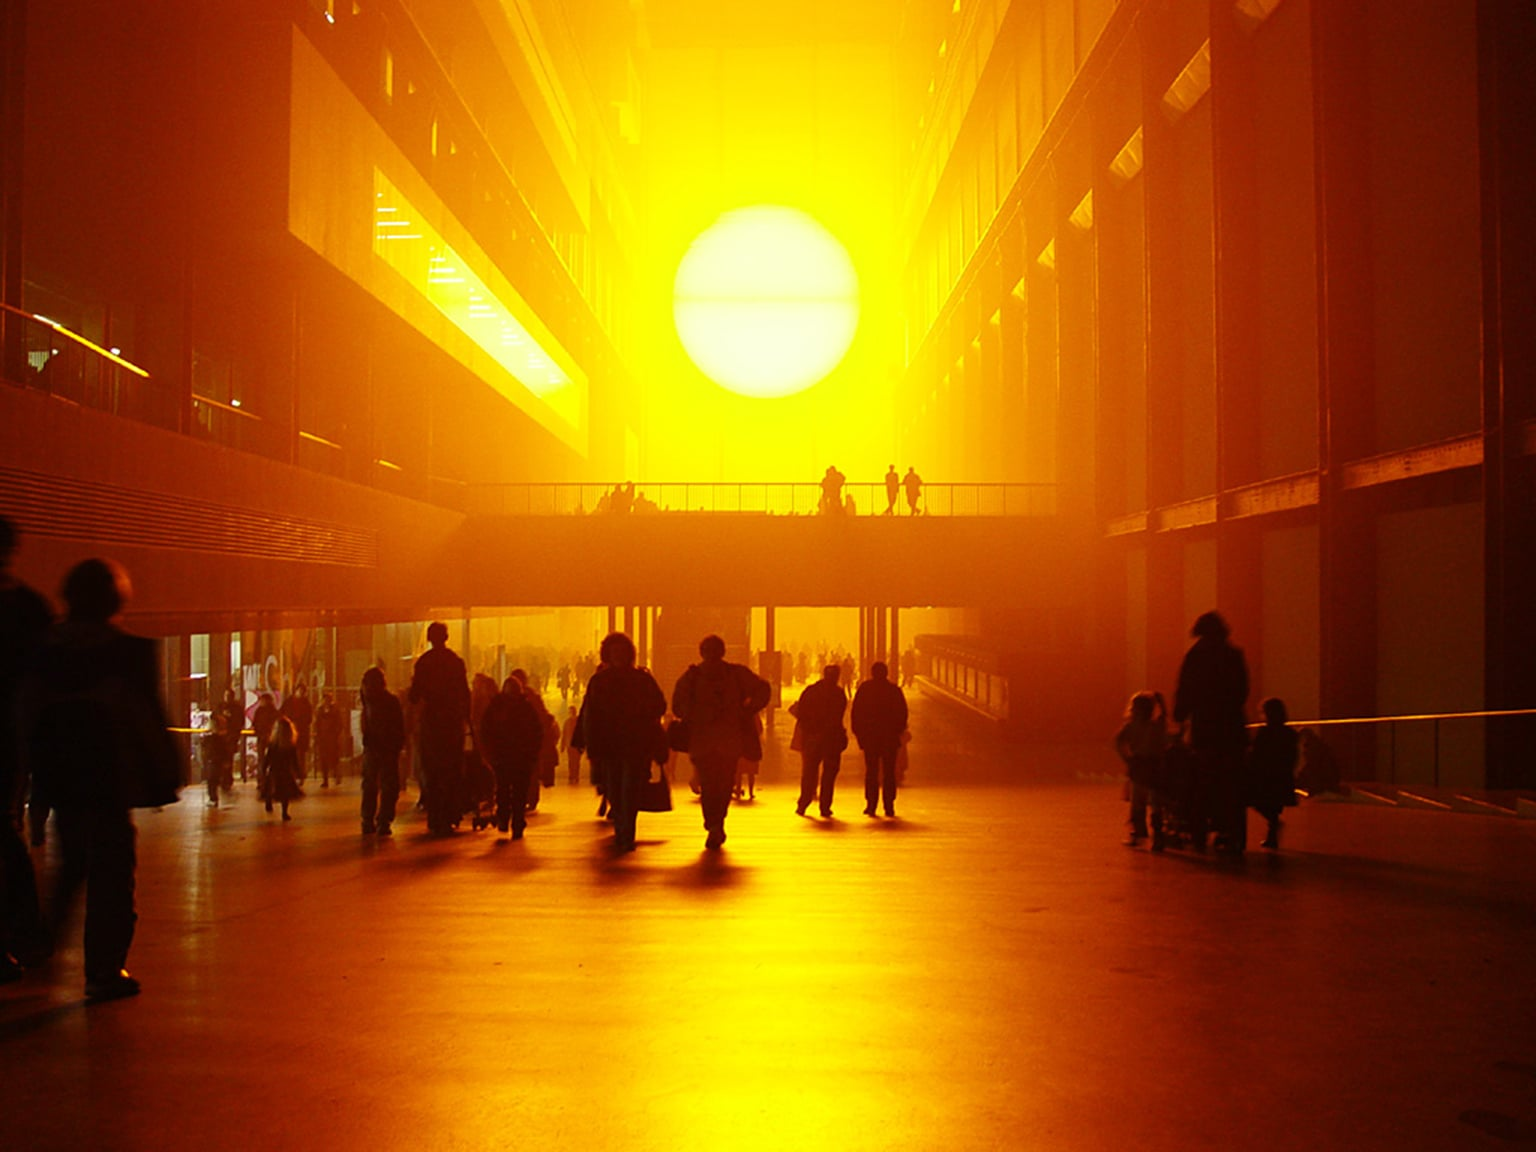 Olafur Eliasson, The Weather Project, 2003 -